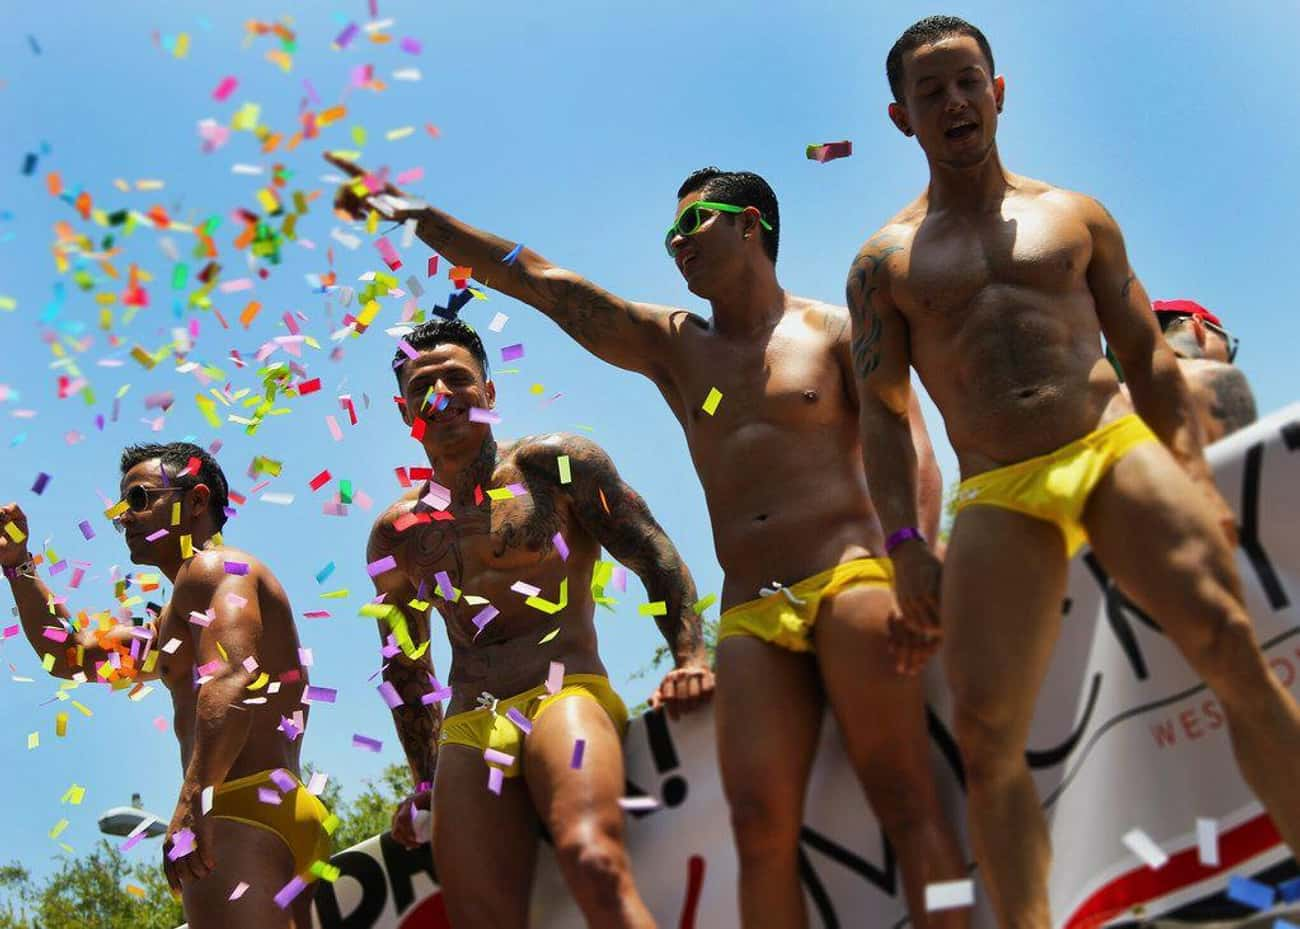 LA Pride Festival & Parade is listed (or ranked) 2 on the list The World's Best LGBTQ+ Pride Festivals